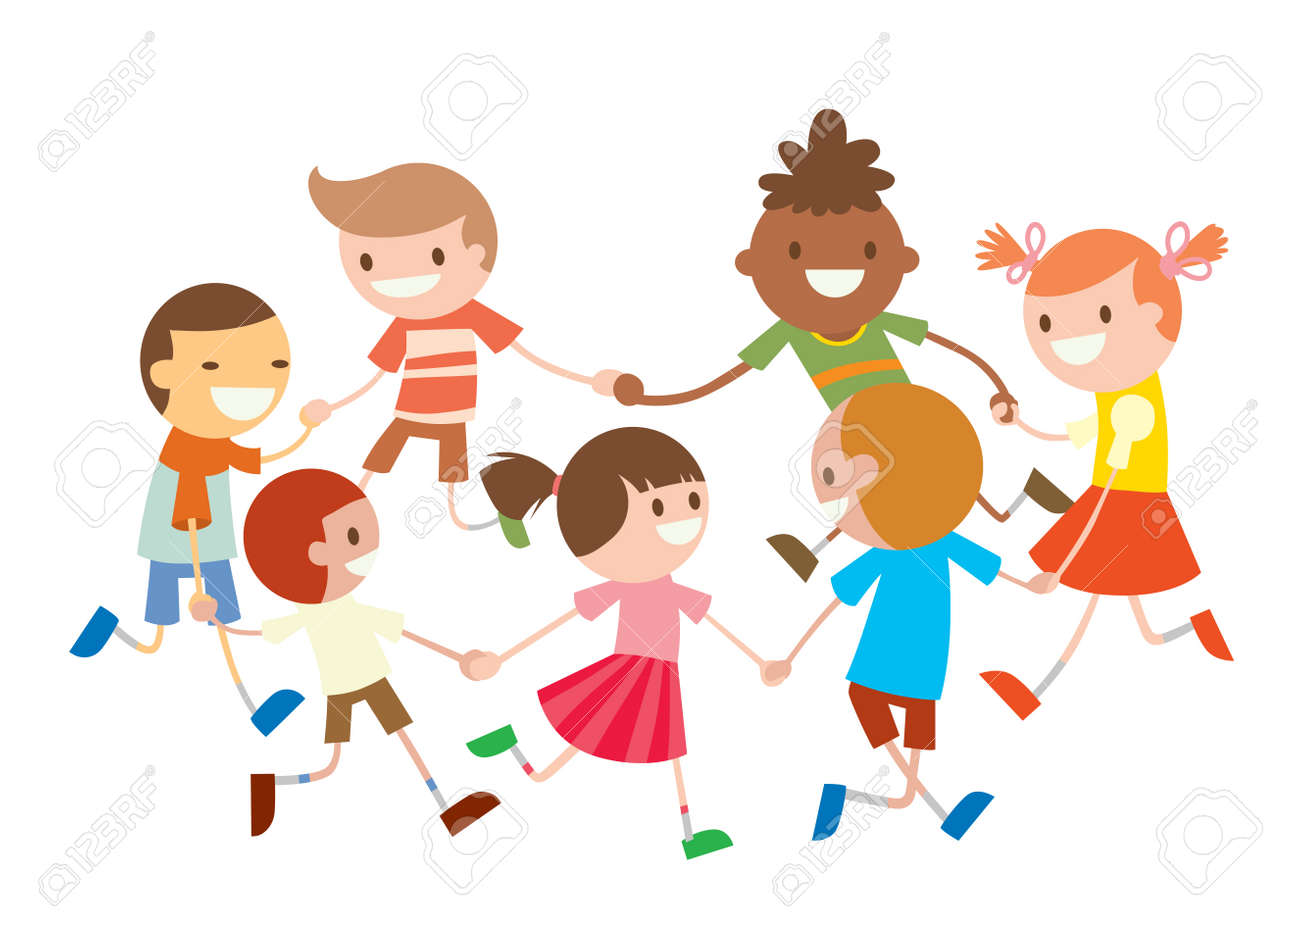 Children Round Dancing Party Dance In Baby Club Illustration Royalty Free Cliparts Vectors And Stock Illustration Image 49476667